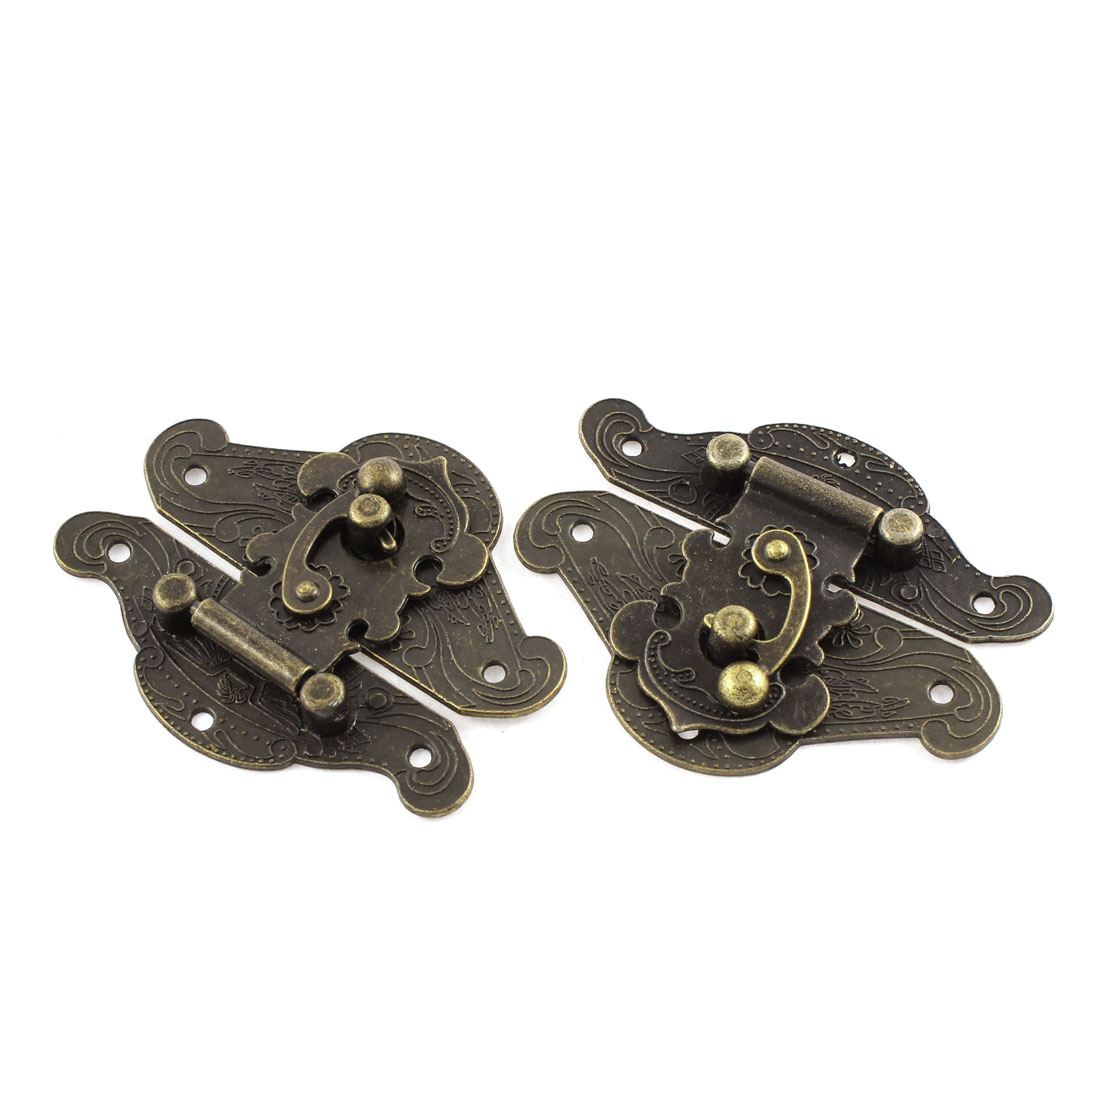 2pcs 85mmx68mm Retro Style Bronze Tone Box Cabinet Hook Lock Lid Latch